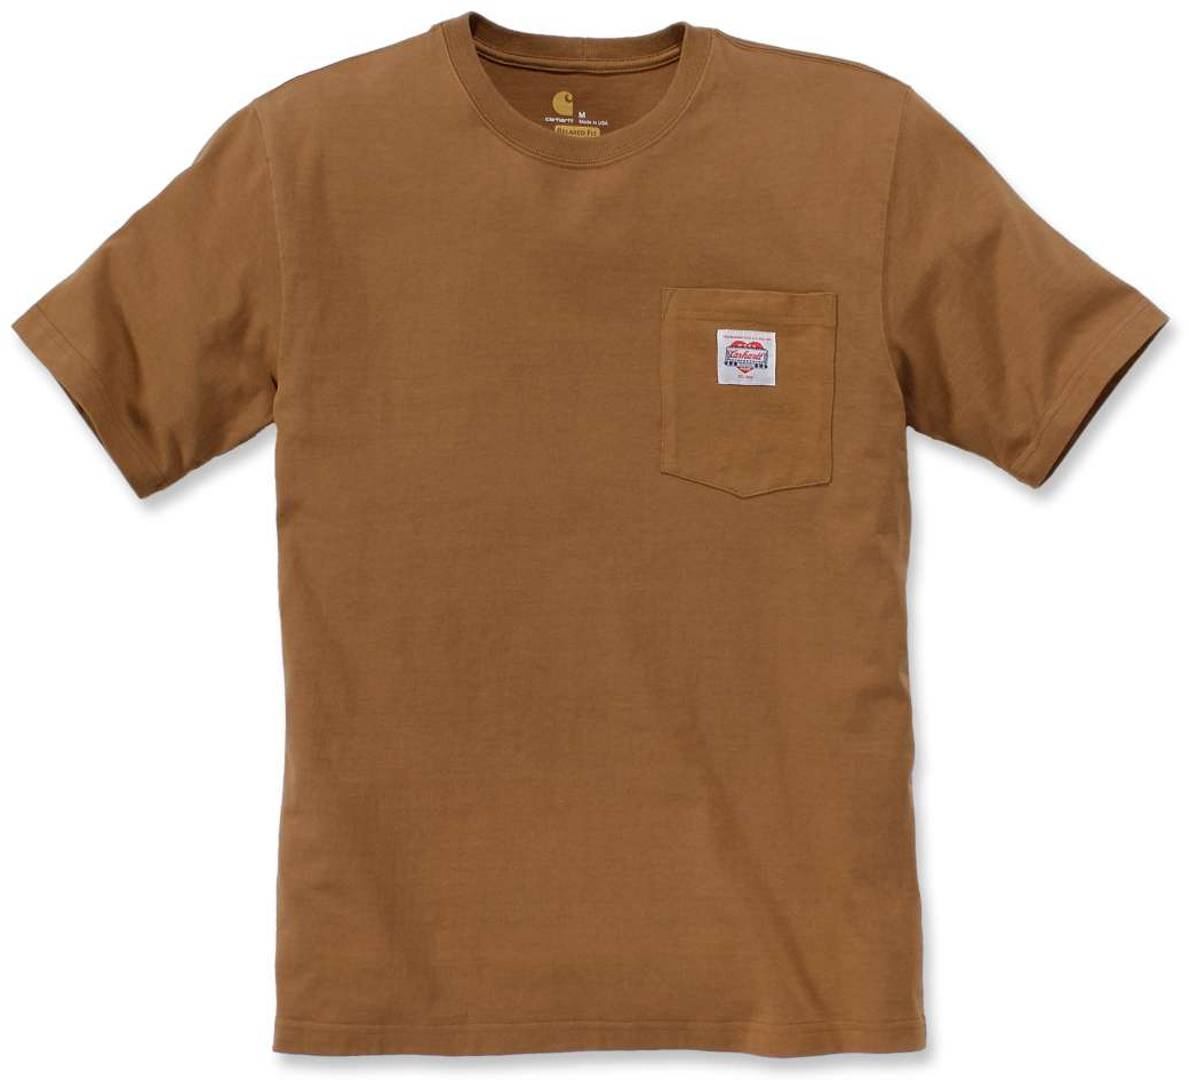 Carhartt K87 Icon Camiseta de Edición Limitada Marrón 2XL